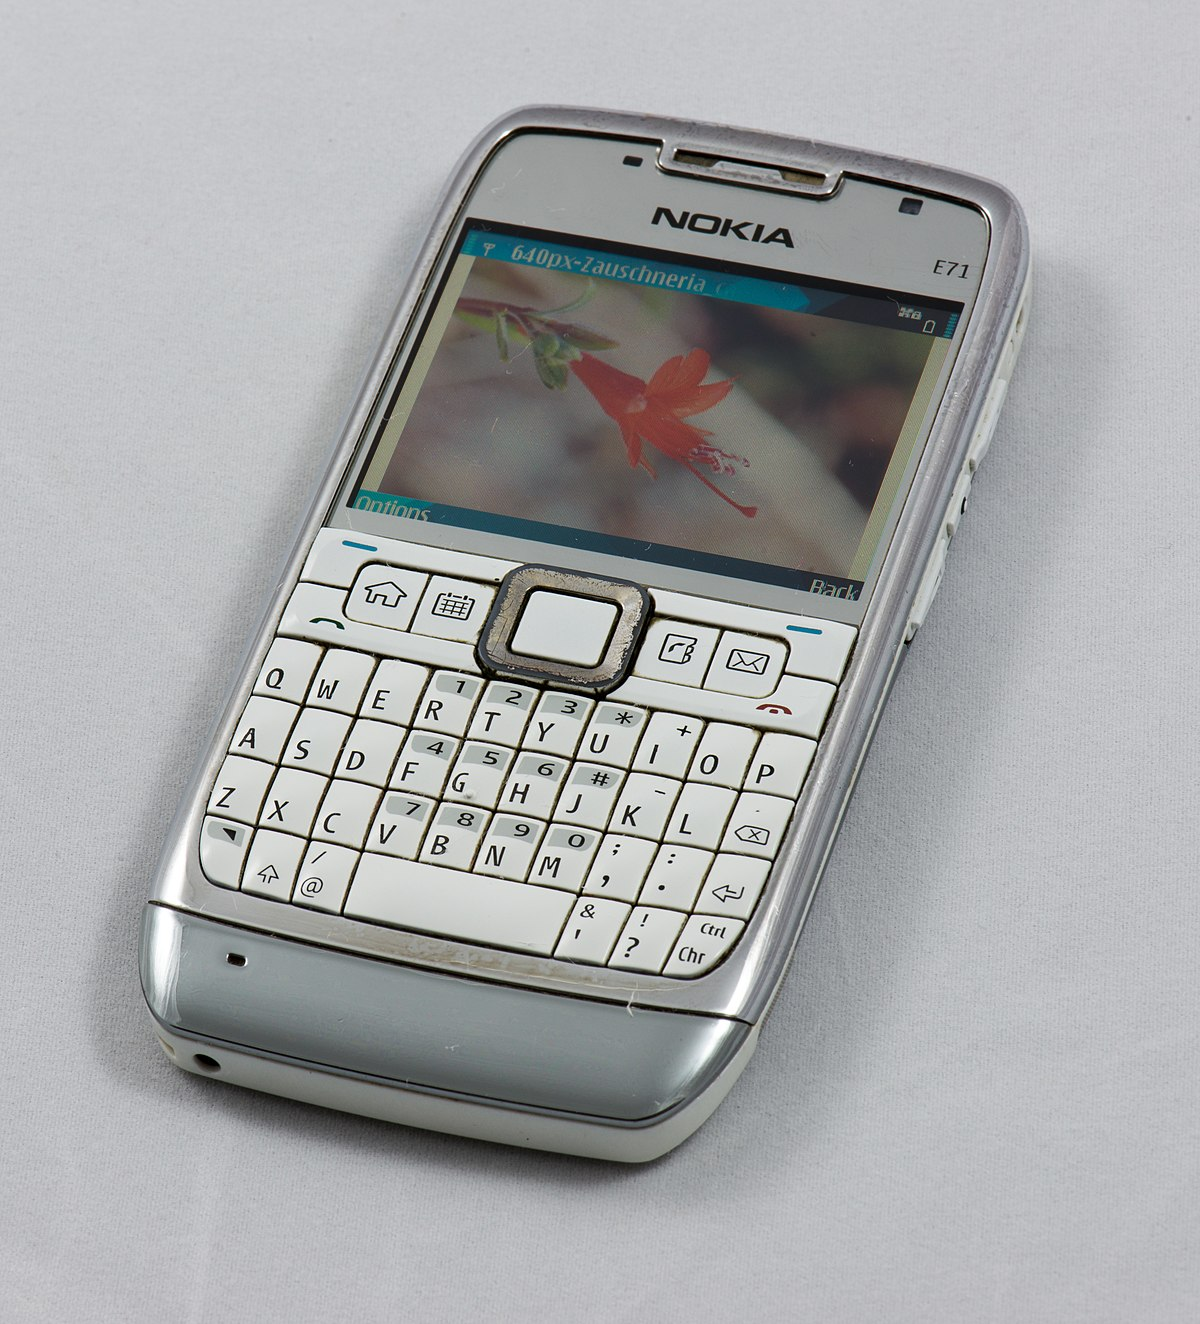 Nokia tv e71 mini инструкция